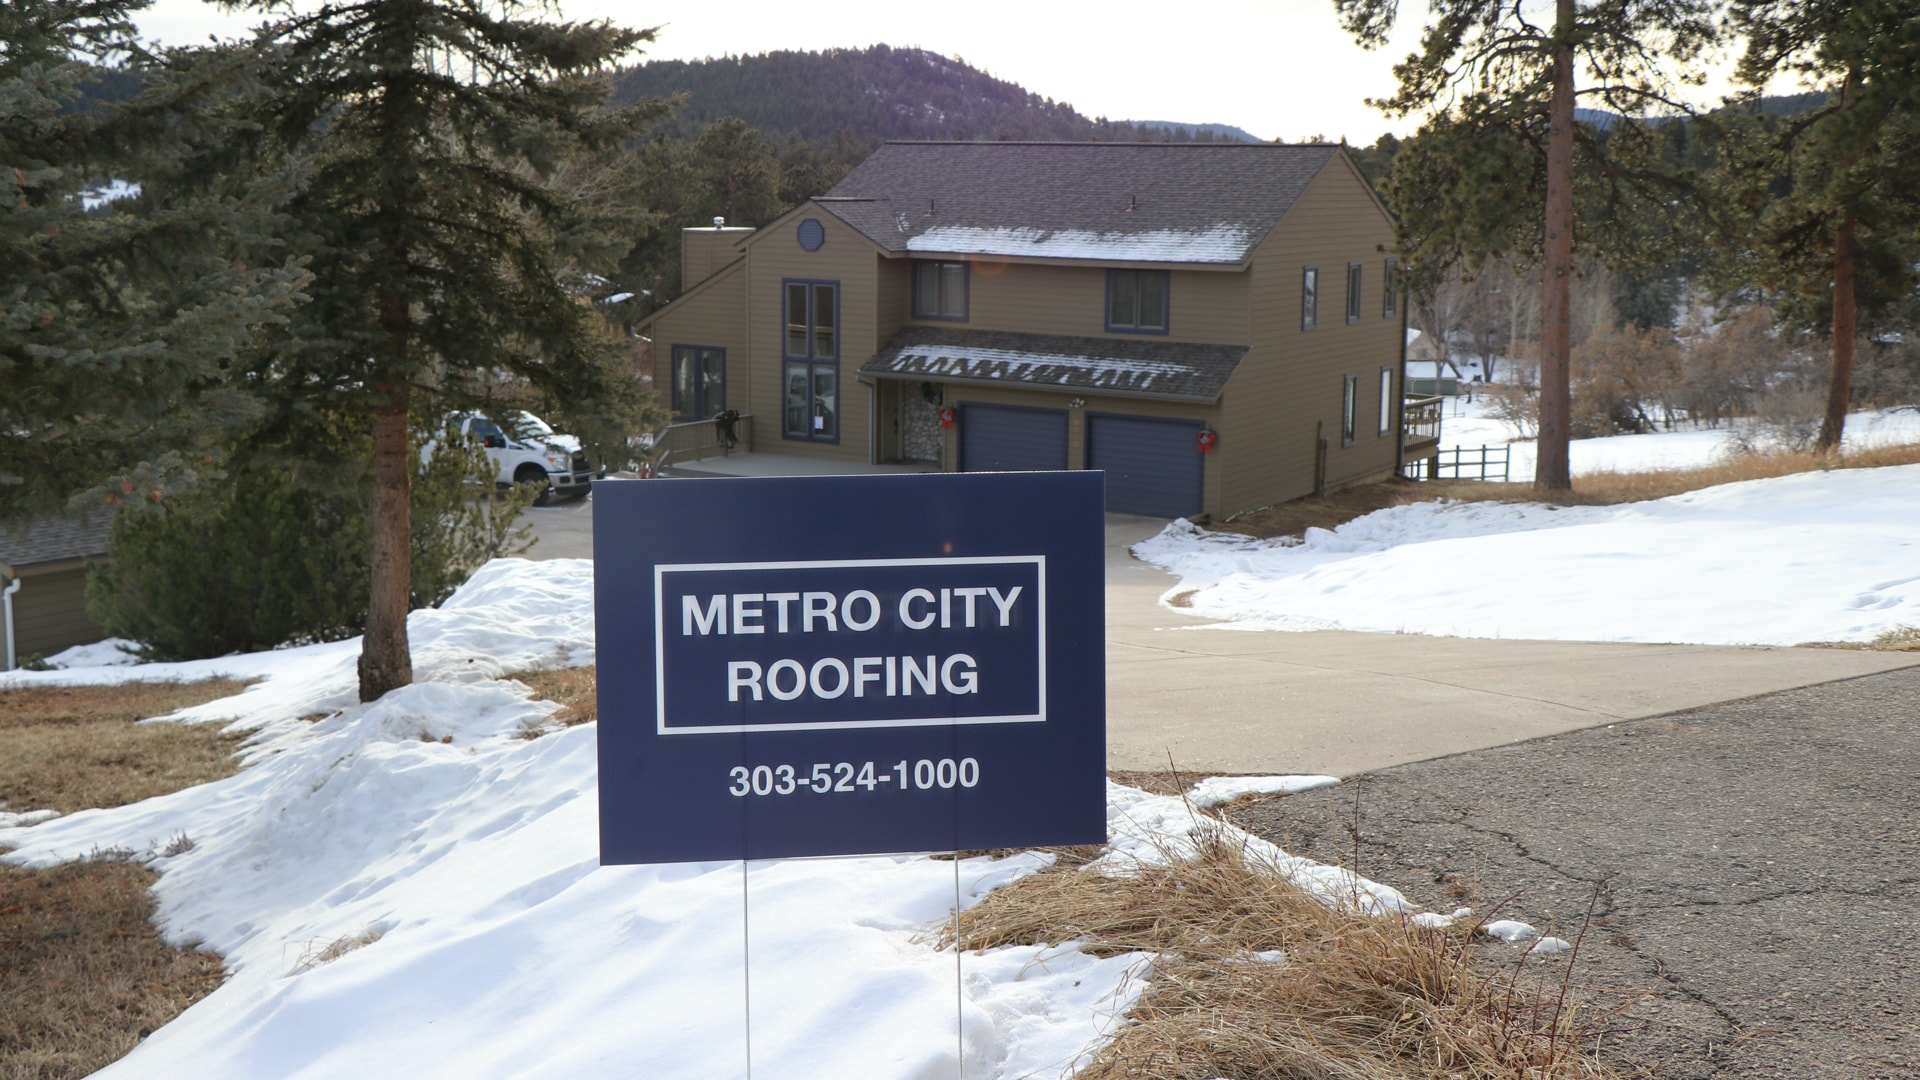 Brown, 2-story mountain home in Morrison, Colorado with long driveway and blue Metro City Roofing sign in the foreground